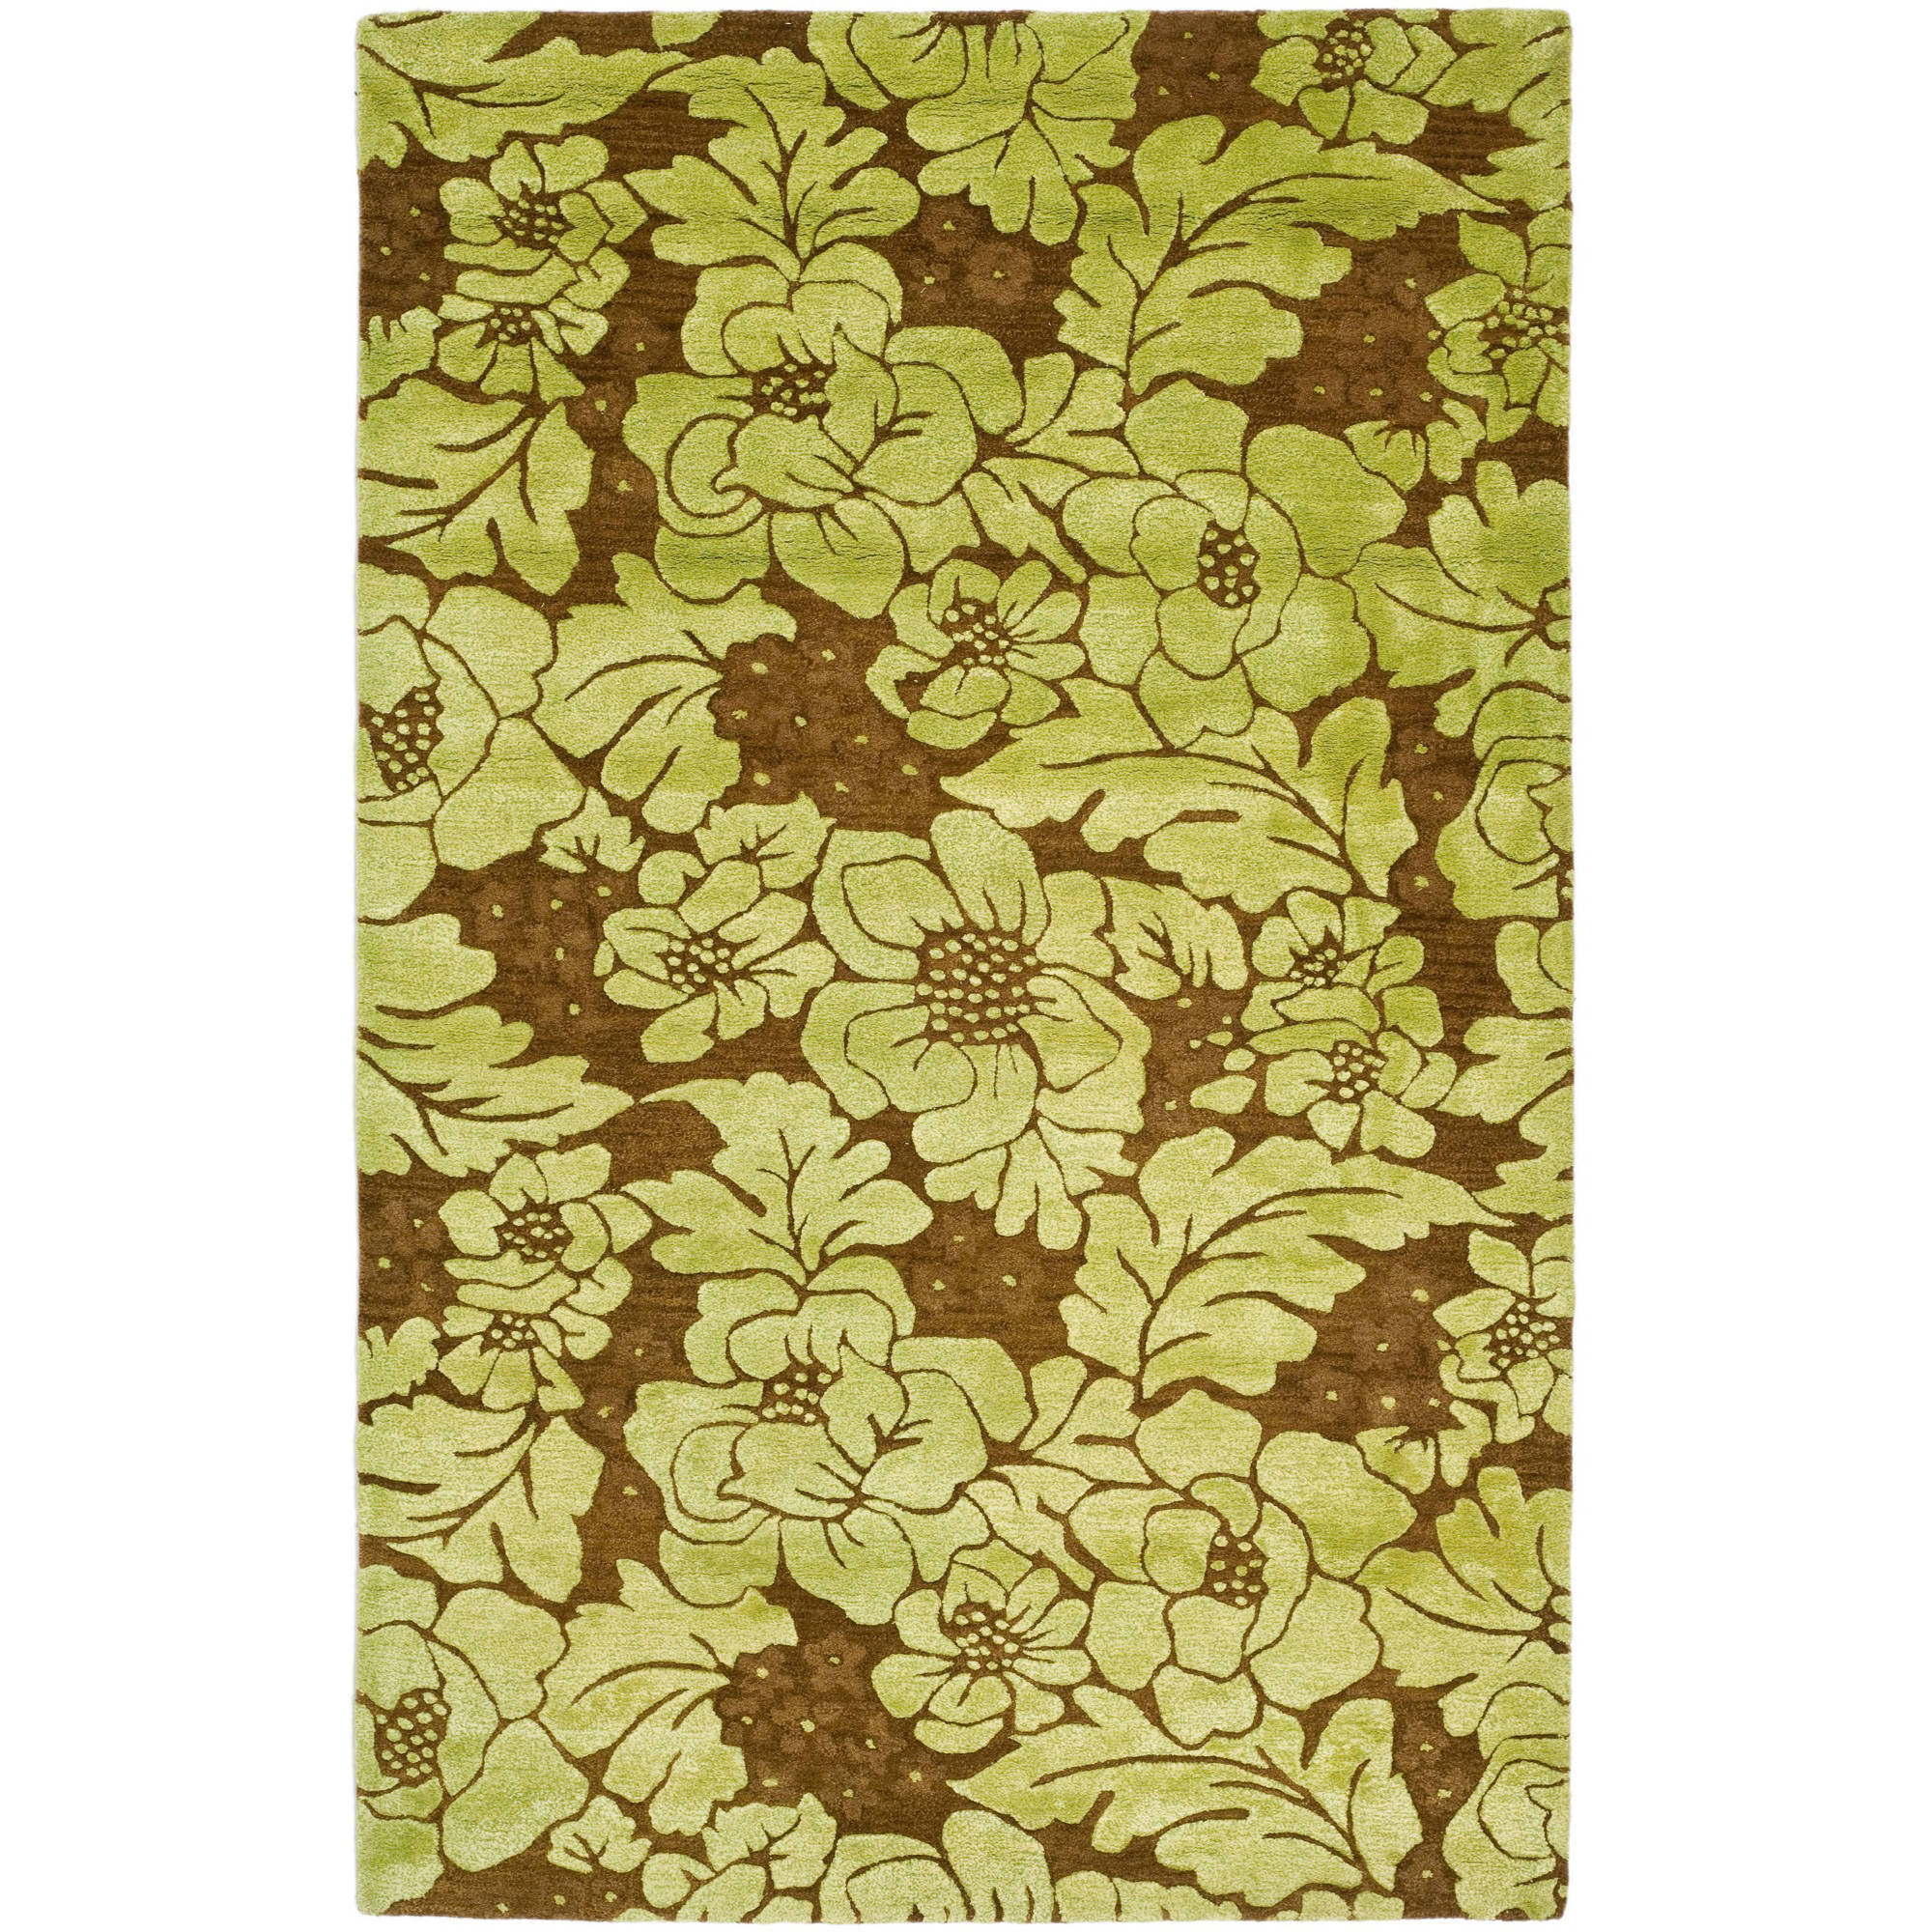 Safavieh Soho Dagan Wool Rug, Lime/Brown, 3.5' x 5.5'